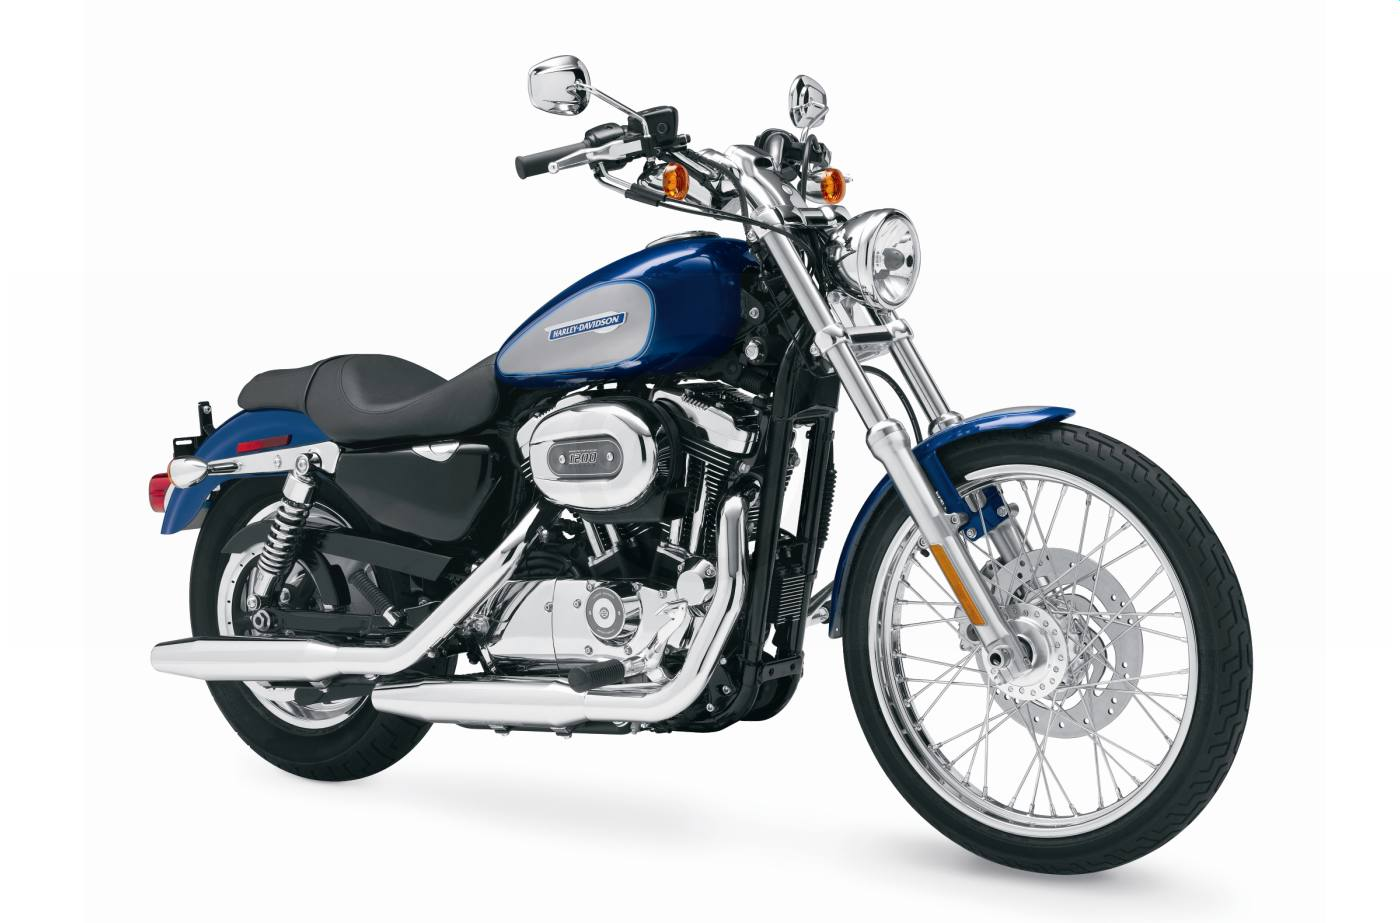 2009 Harley Davidson Sportster 1200 Custom For Sale In Peoria Il World Of Powersports Inc